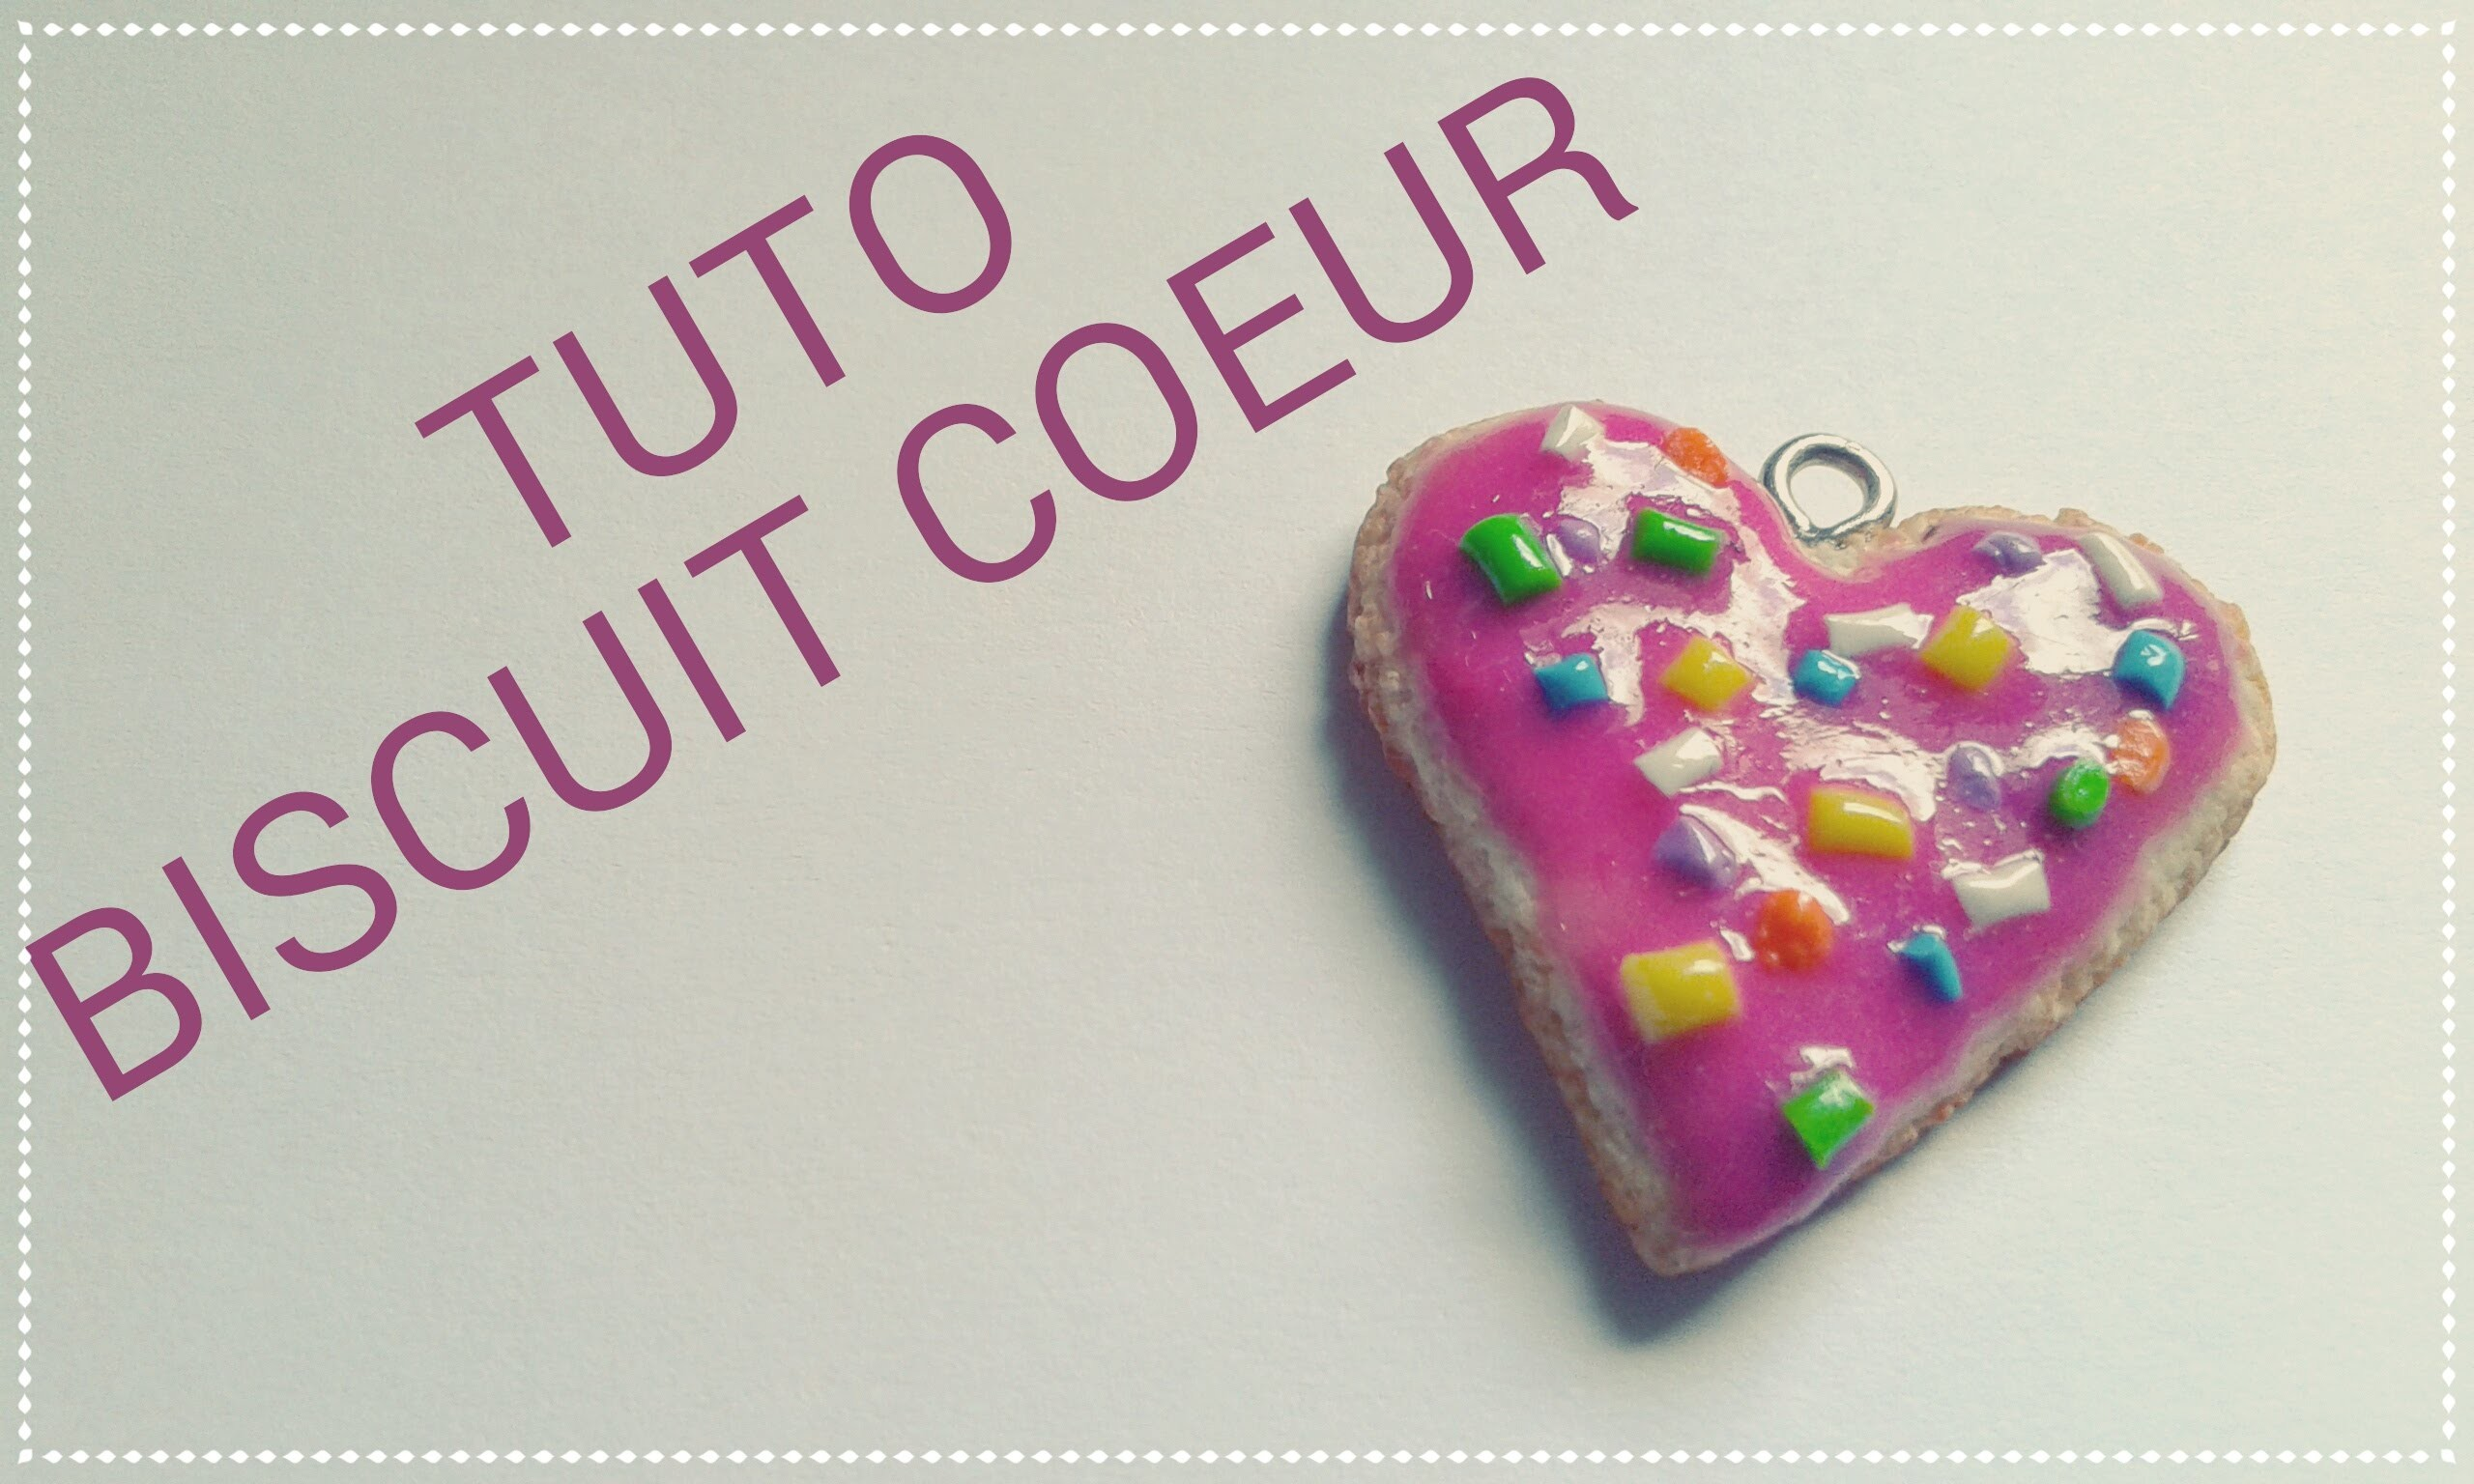 Tuto fimo: biscuit cœur - polymer clay tutorial heart biscuit